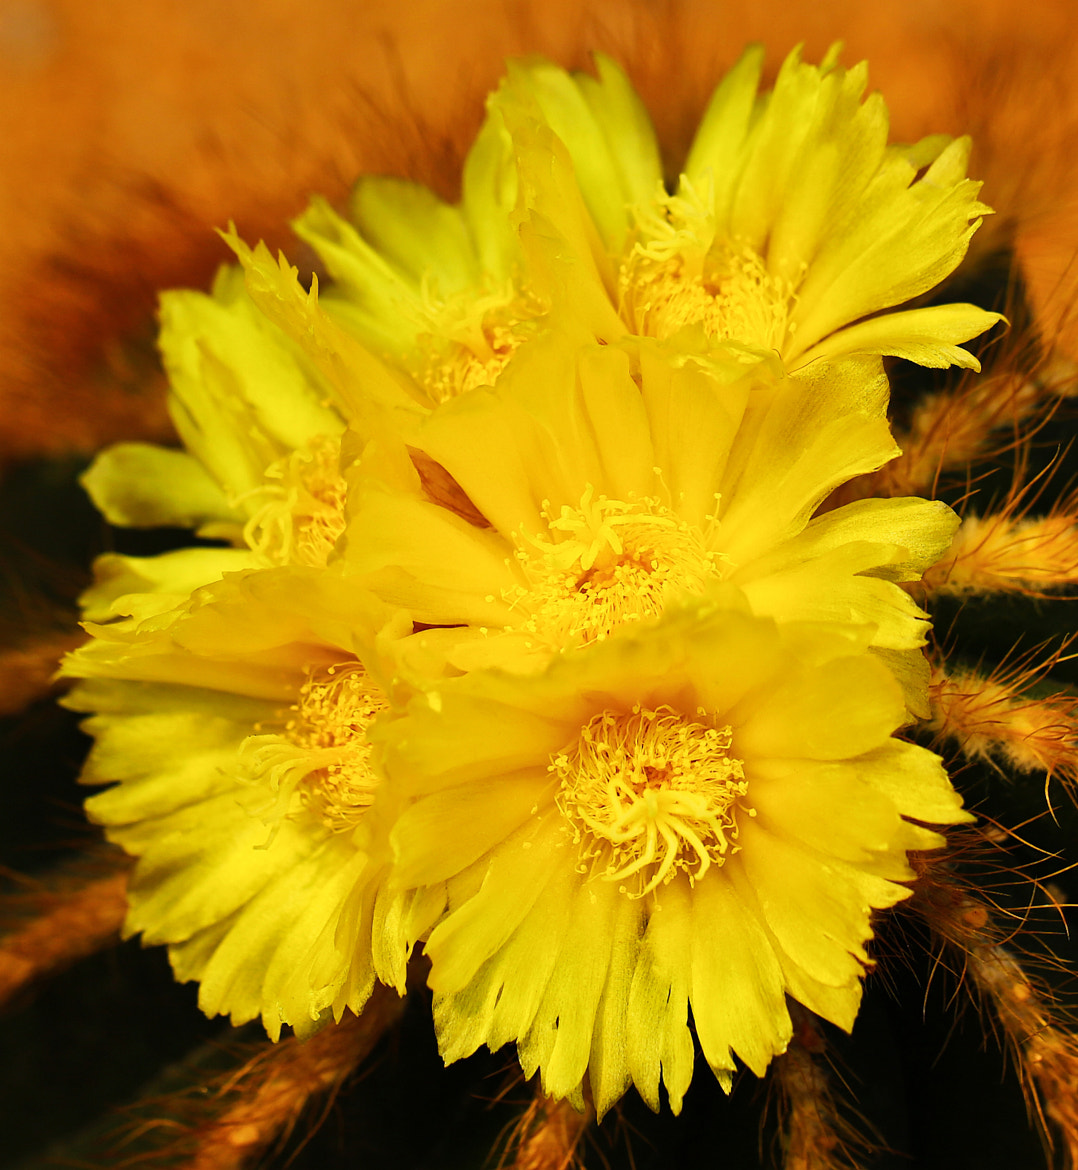 Photograph prickly pear flower by Qi Zhi on 500px